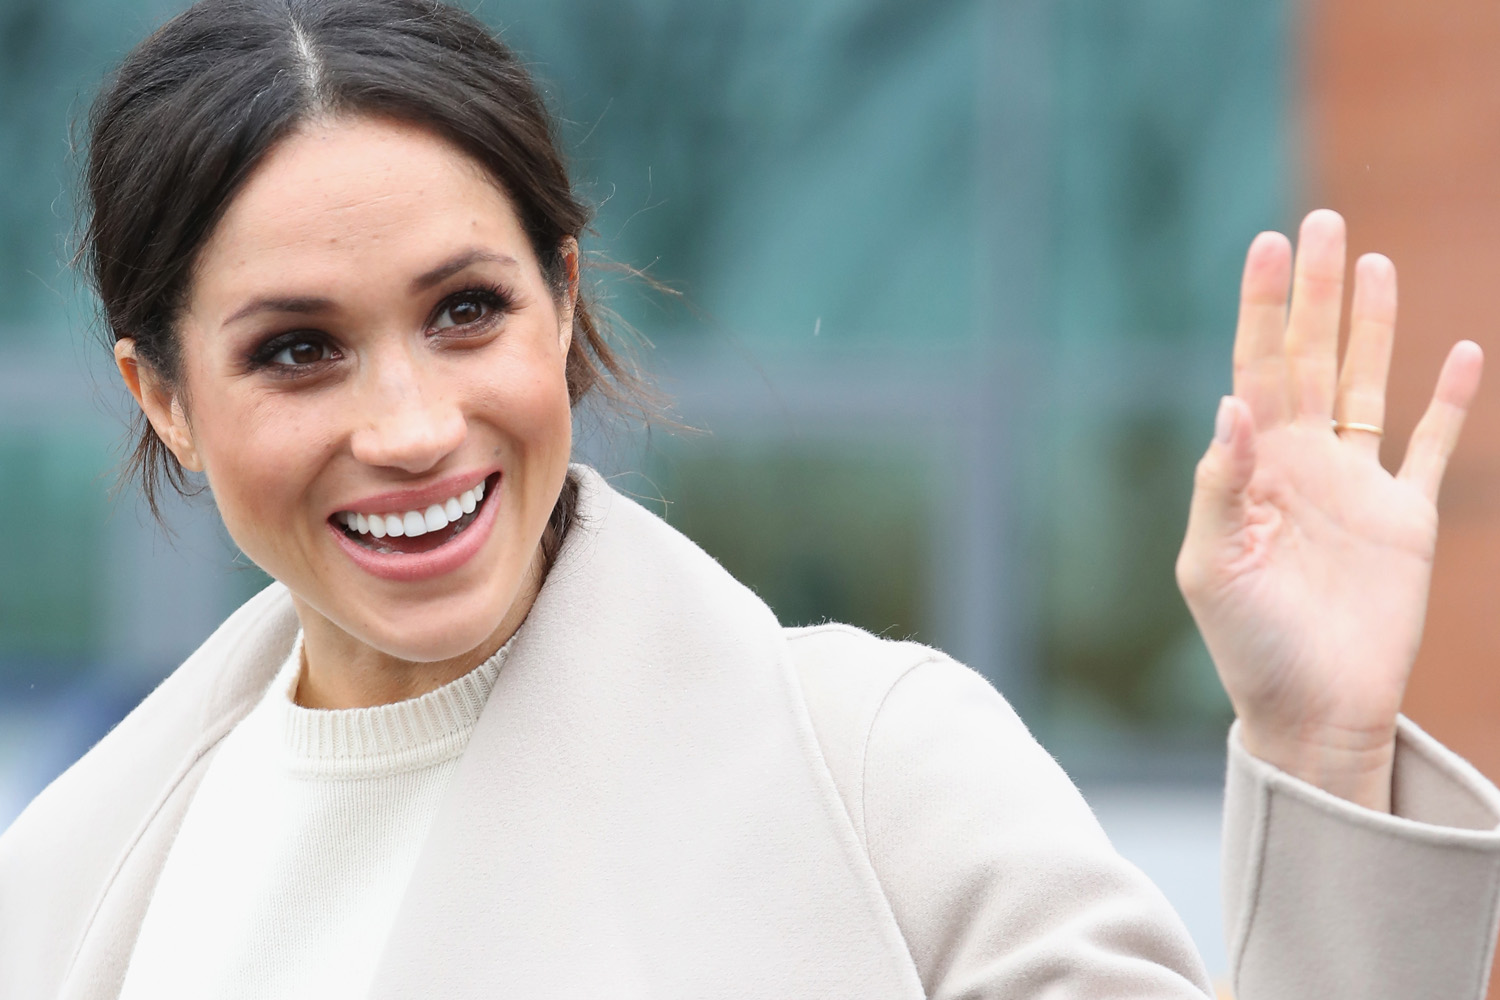 Meghan Markle 'Wants To Be Princess Diana 2.0', Says Book